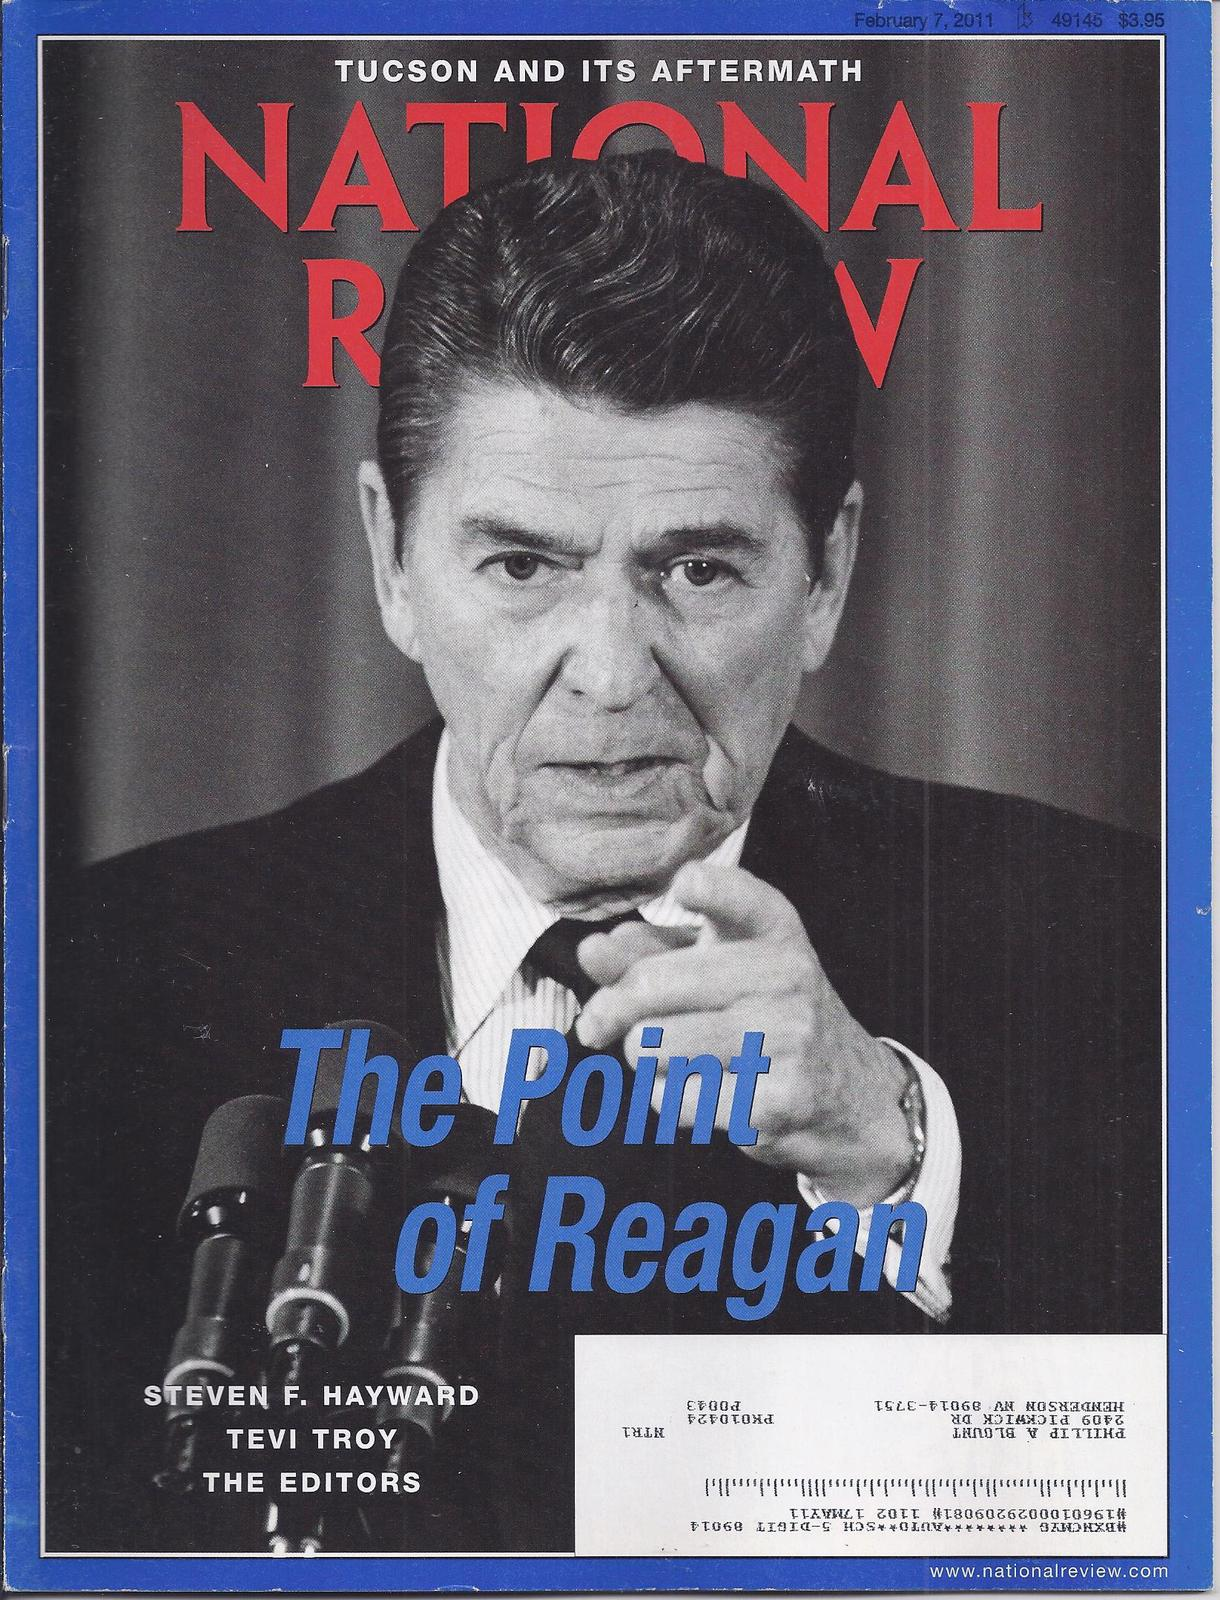 Primary image for NAVAL REVIEW Magazine Feb 2011: The Point of Reagan